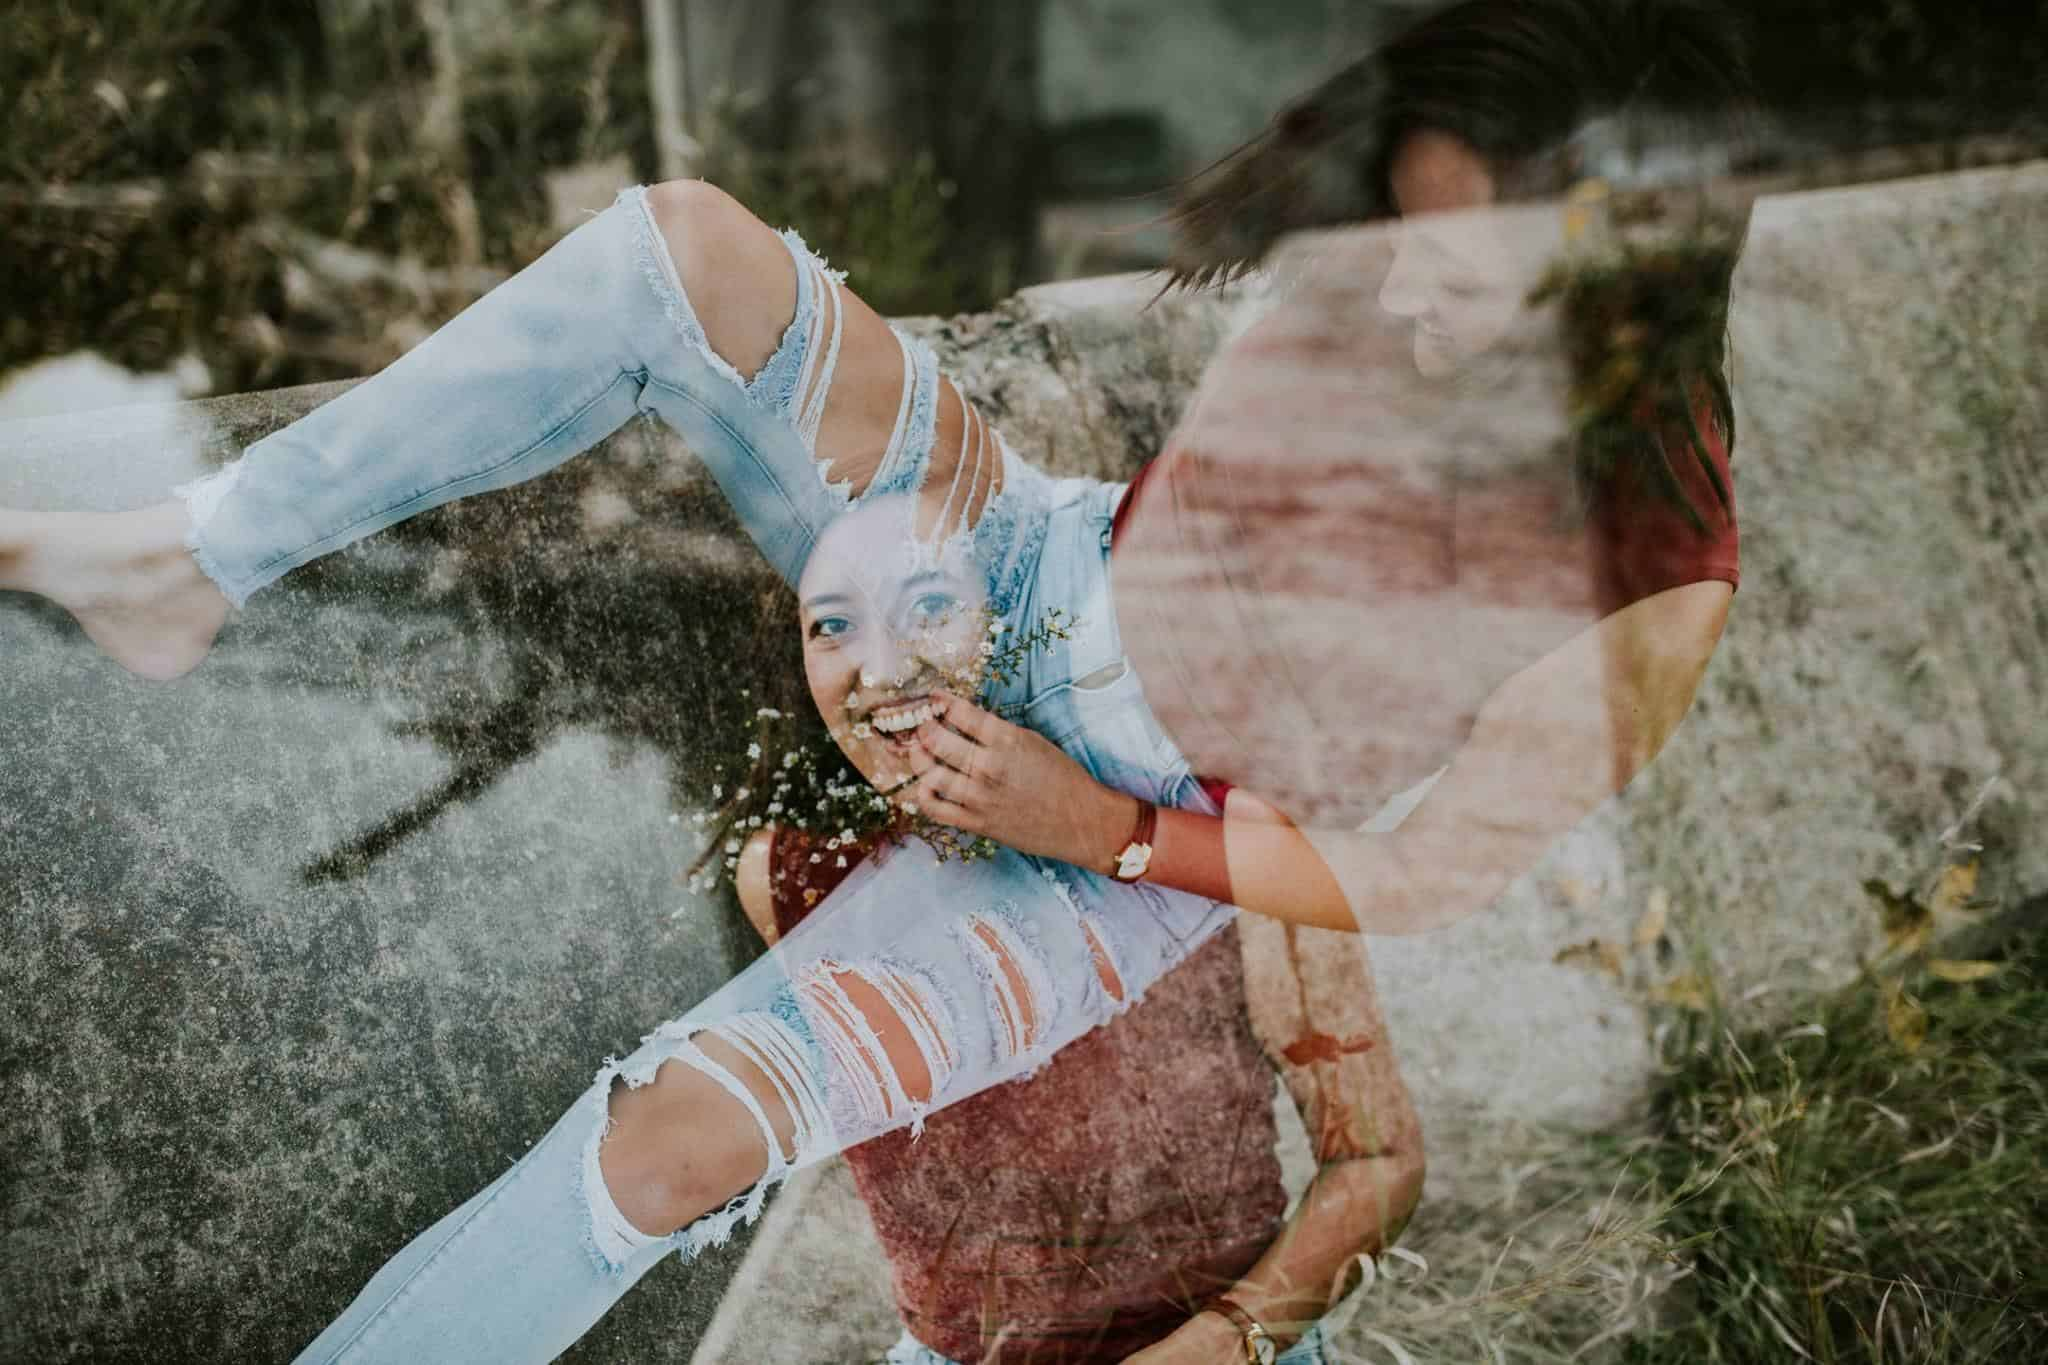 A double exposure photo of a girl went wrong, where she sits on her on face